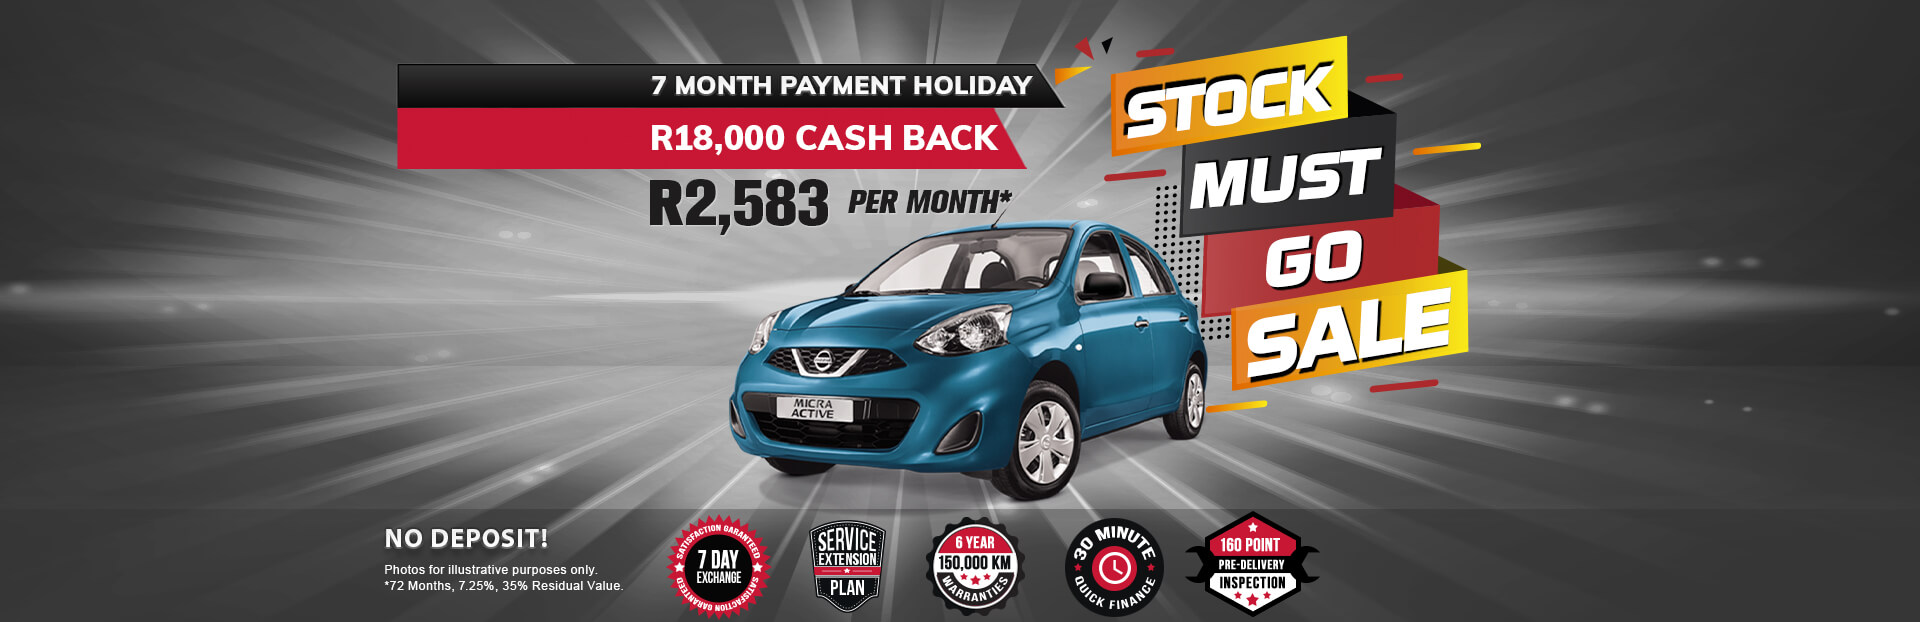 NEC landing page specials September Micra Active